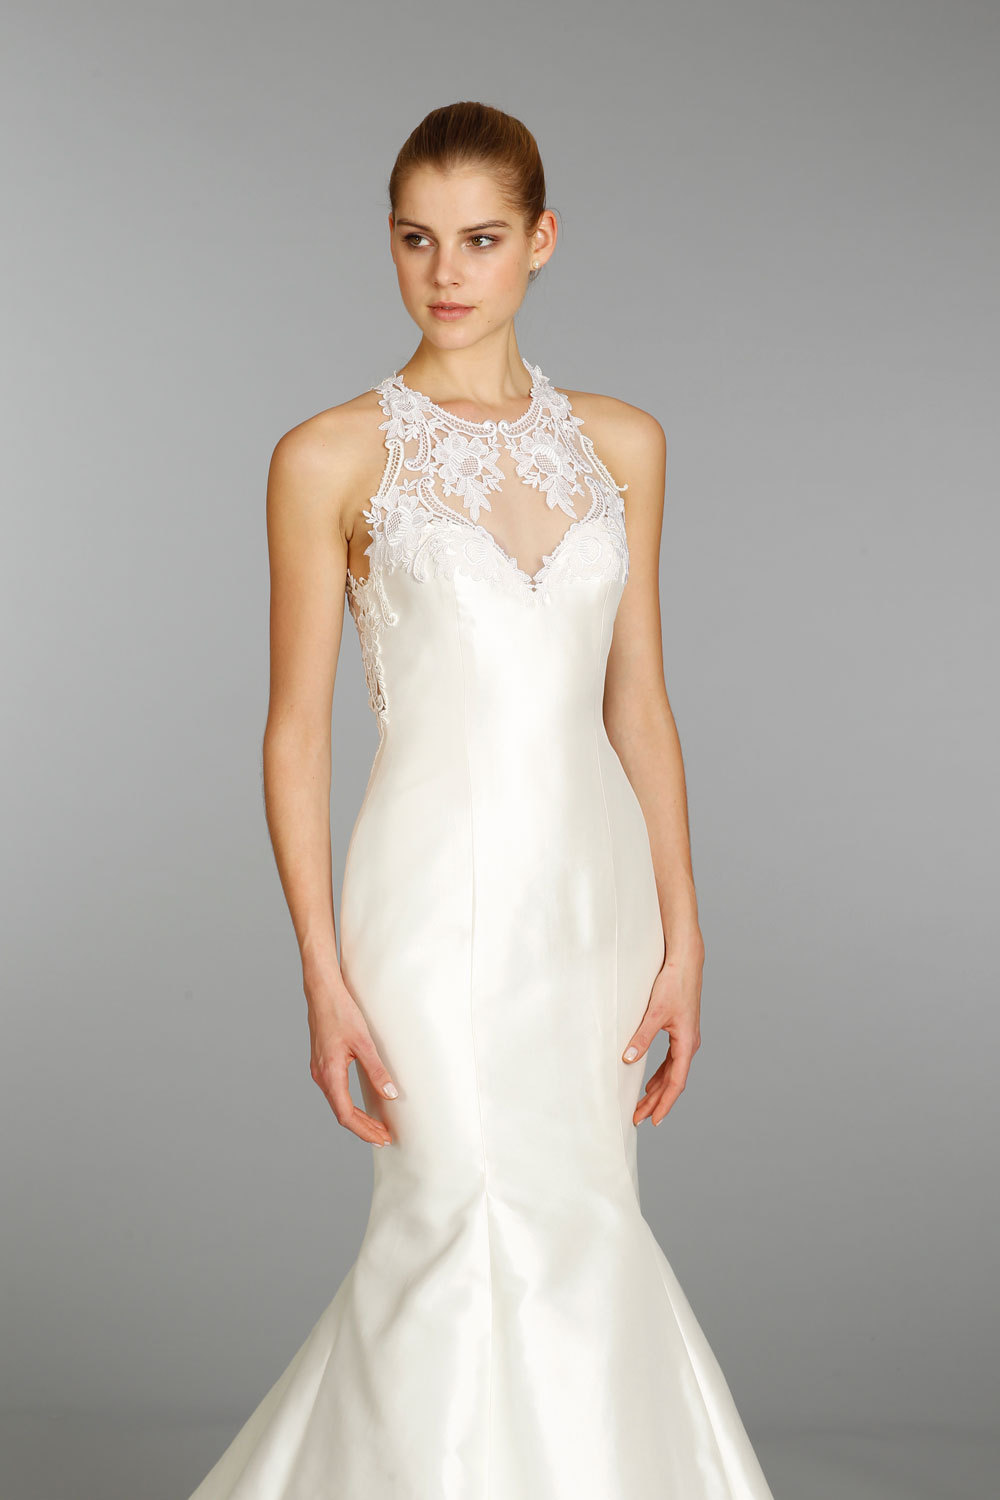 Lazaro wedding dress fall 2013 bridal 3356 for Where to buy lazaro wedding dresses